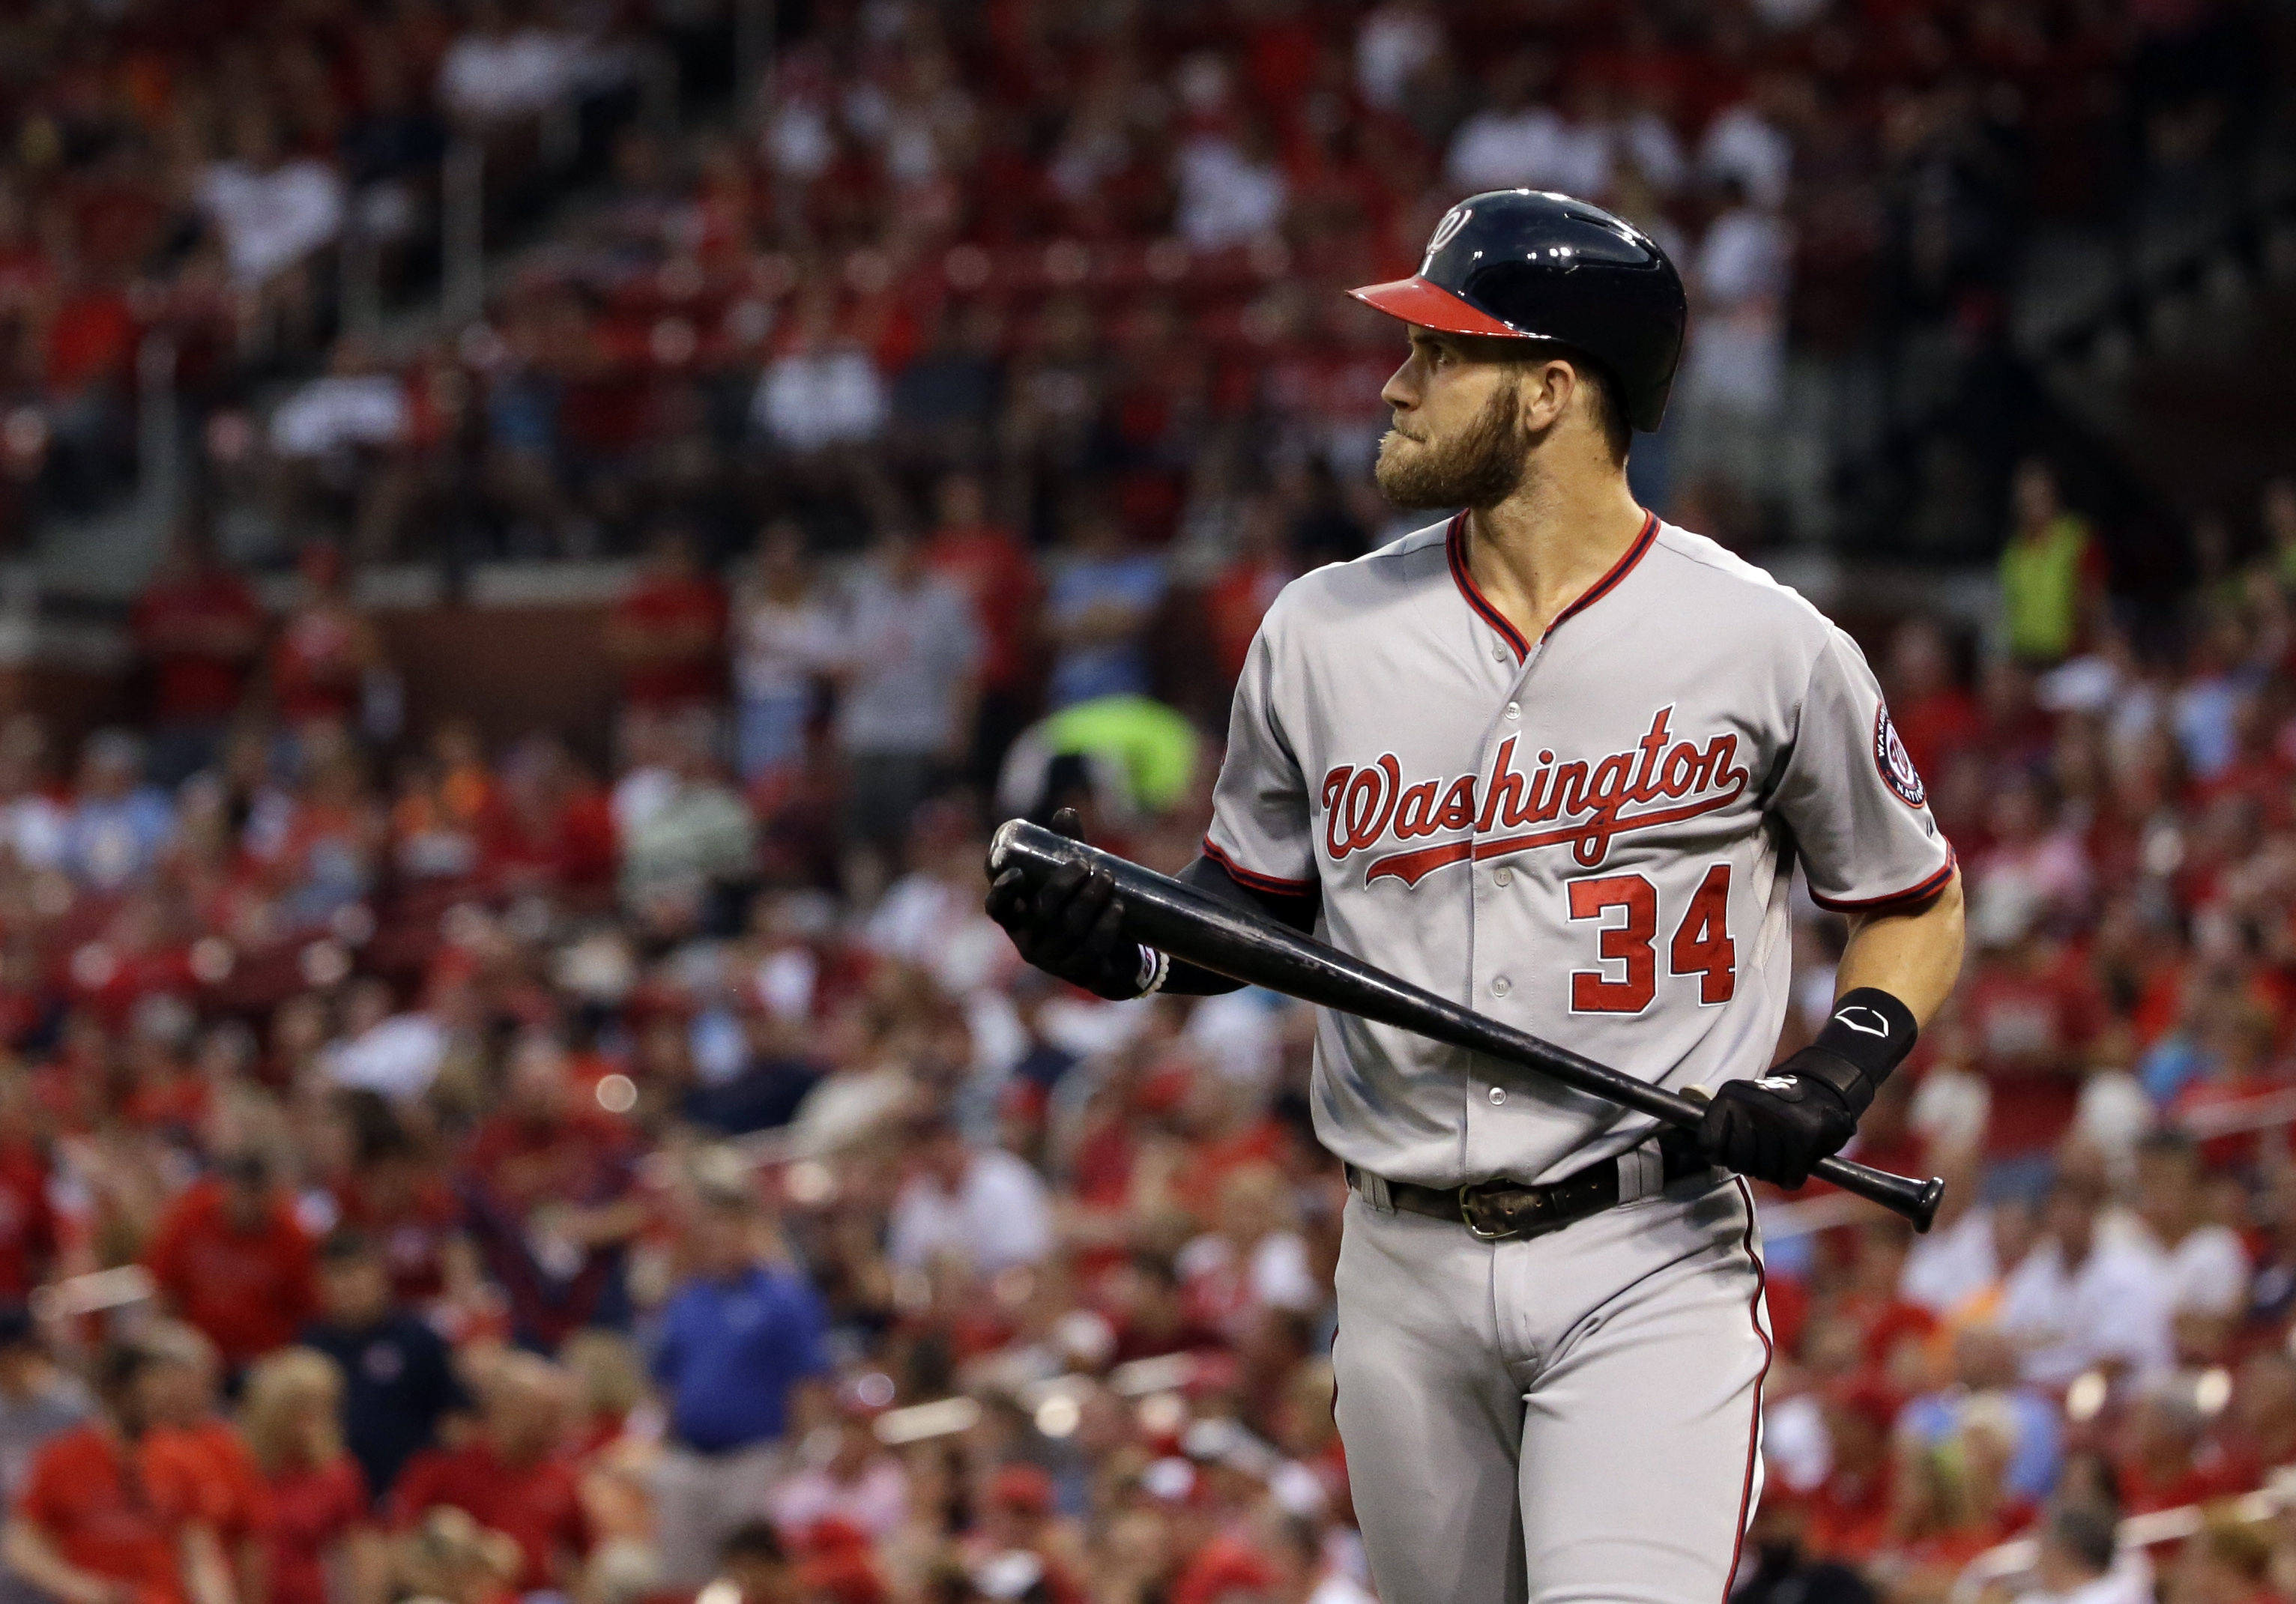 Washington Nationals' Bryce Harper heads back to the dugout after striking out during the first inning of a baseball game against the St. Louis Cardinals Wednesday, Sept. 2, 2015, in St. Louis. (AP Photo/Jeff Roberson)